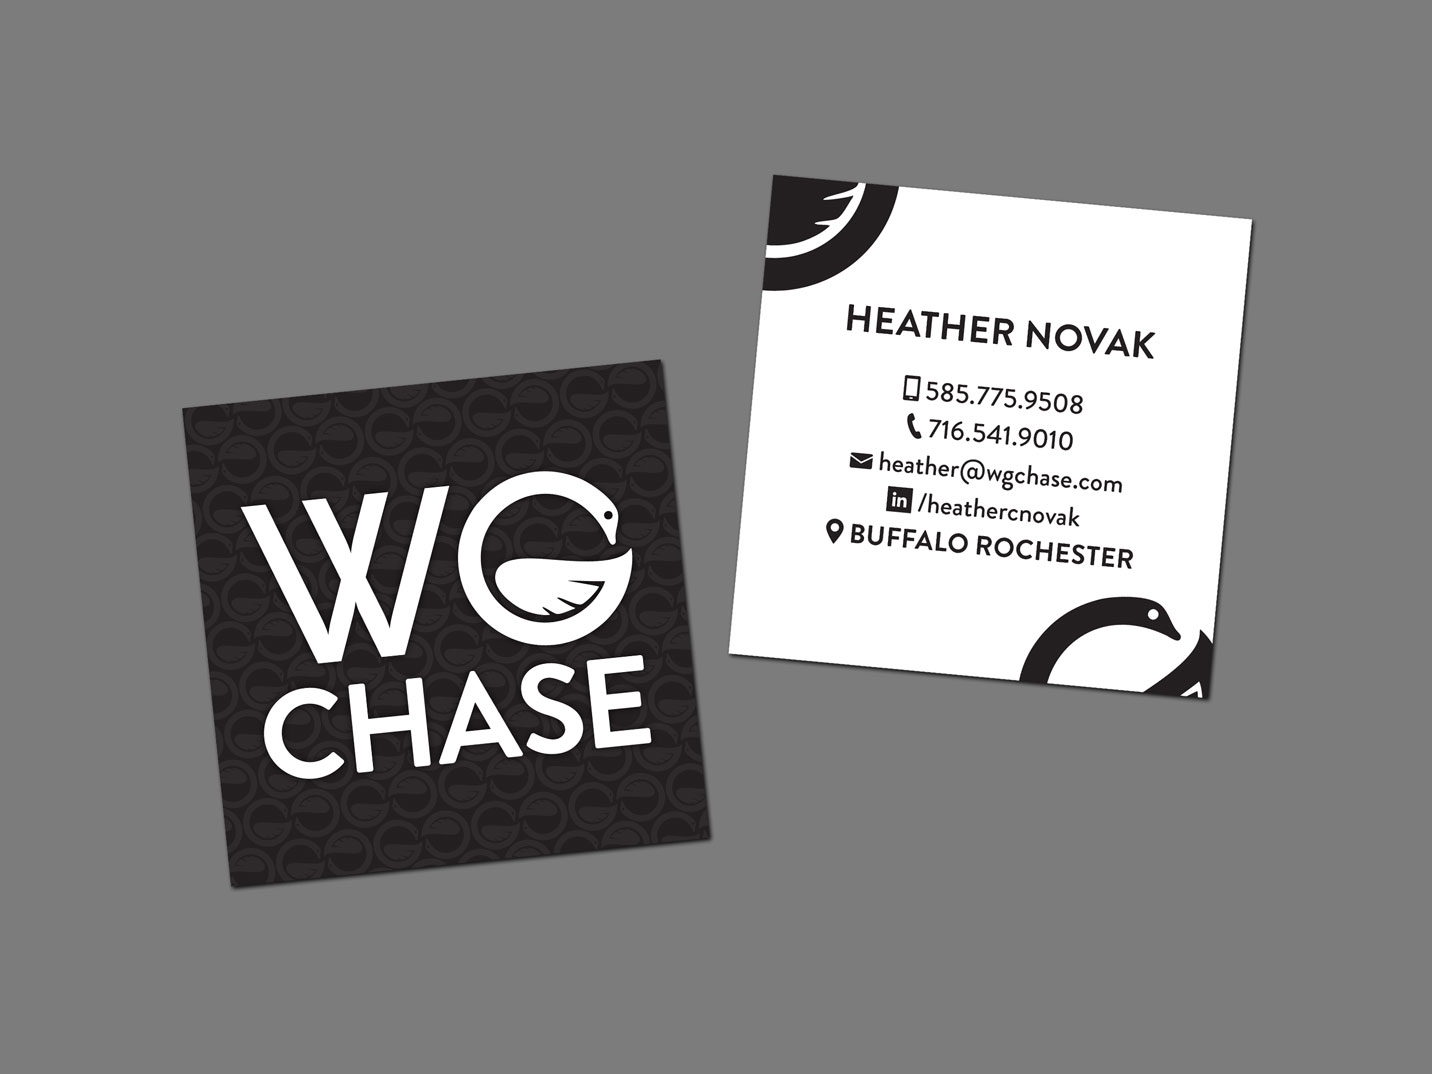 WG Chase Business Card Design